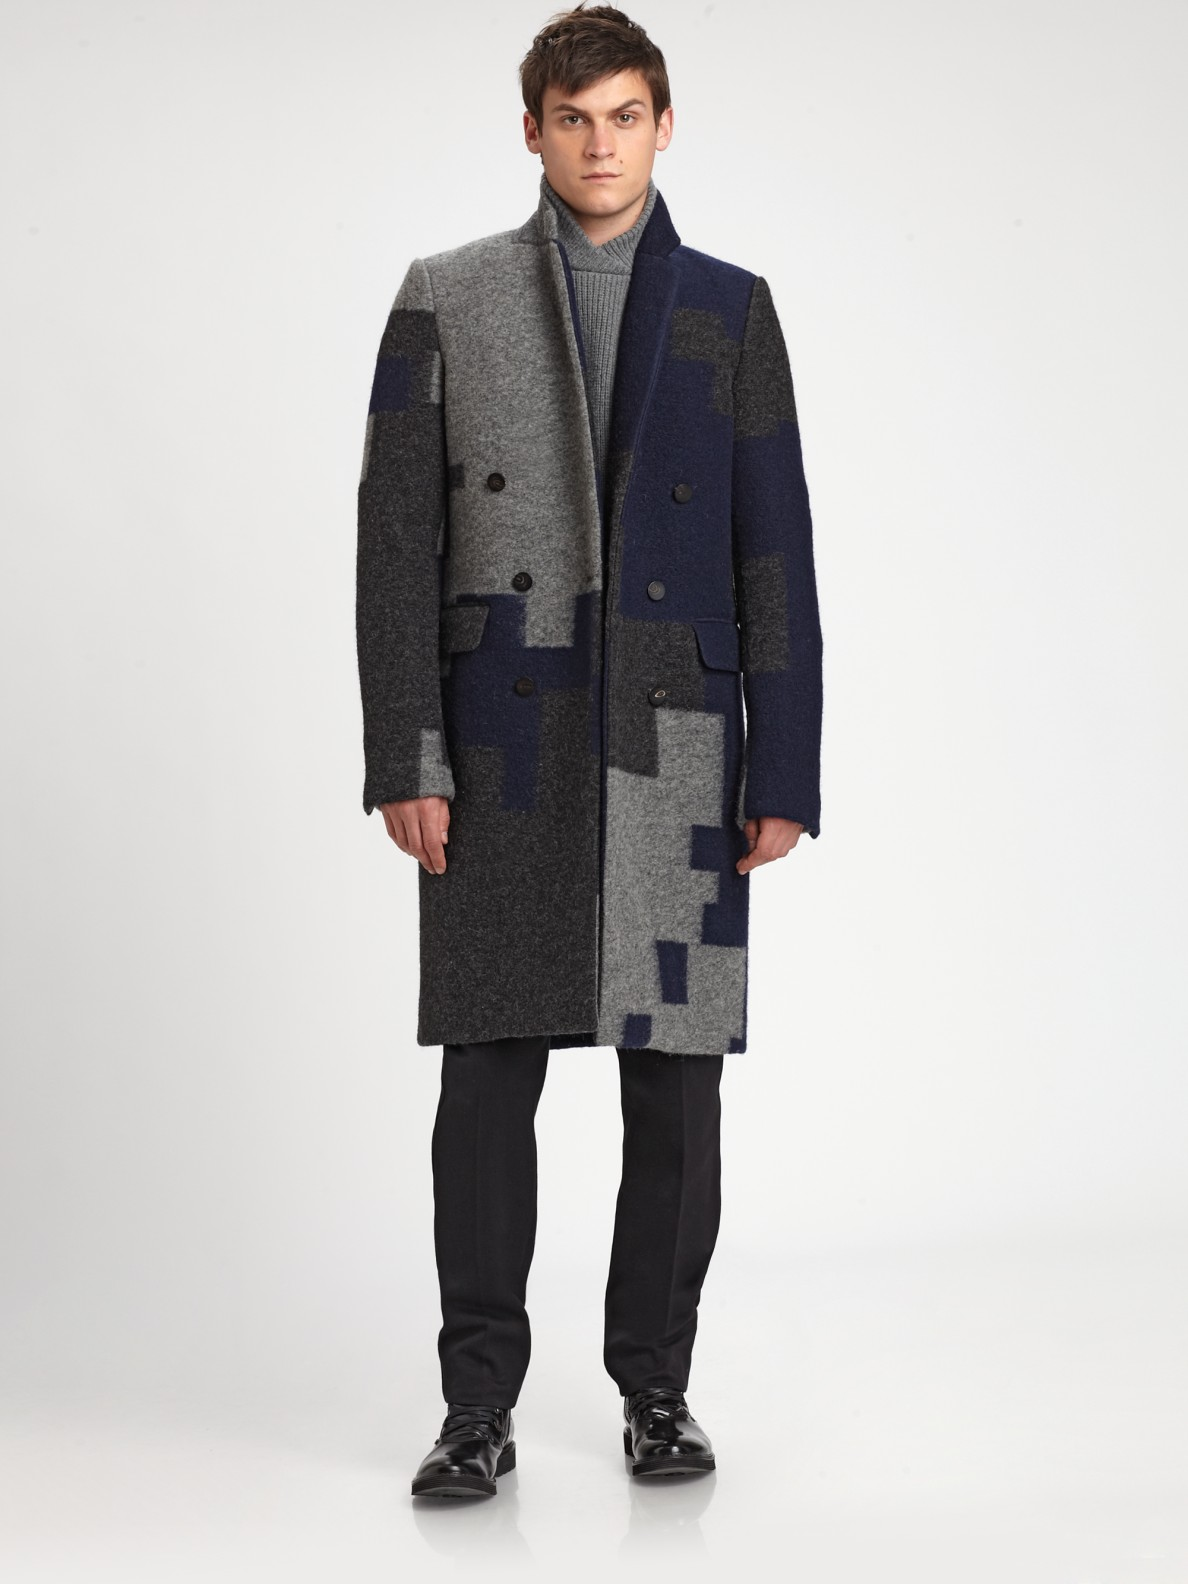 31 phillip lim navy doublebreasted gentlemans coat product 1 4013988 367933772 3.1 Phillip Lim – Like playing Tetris on a coat.